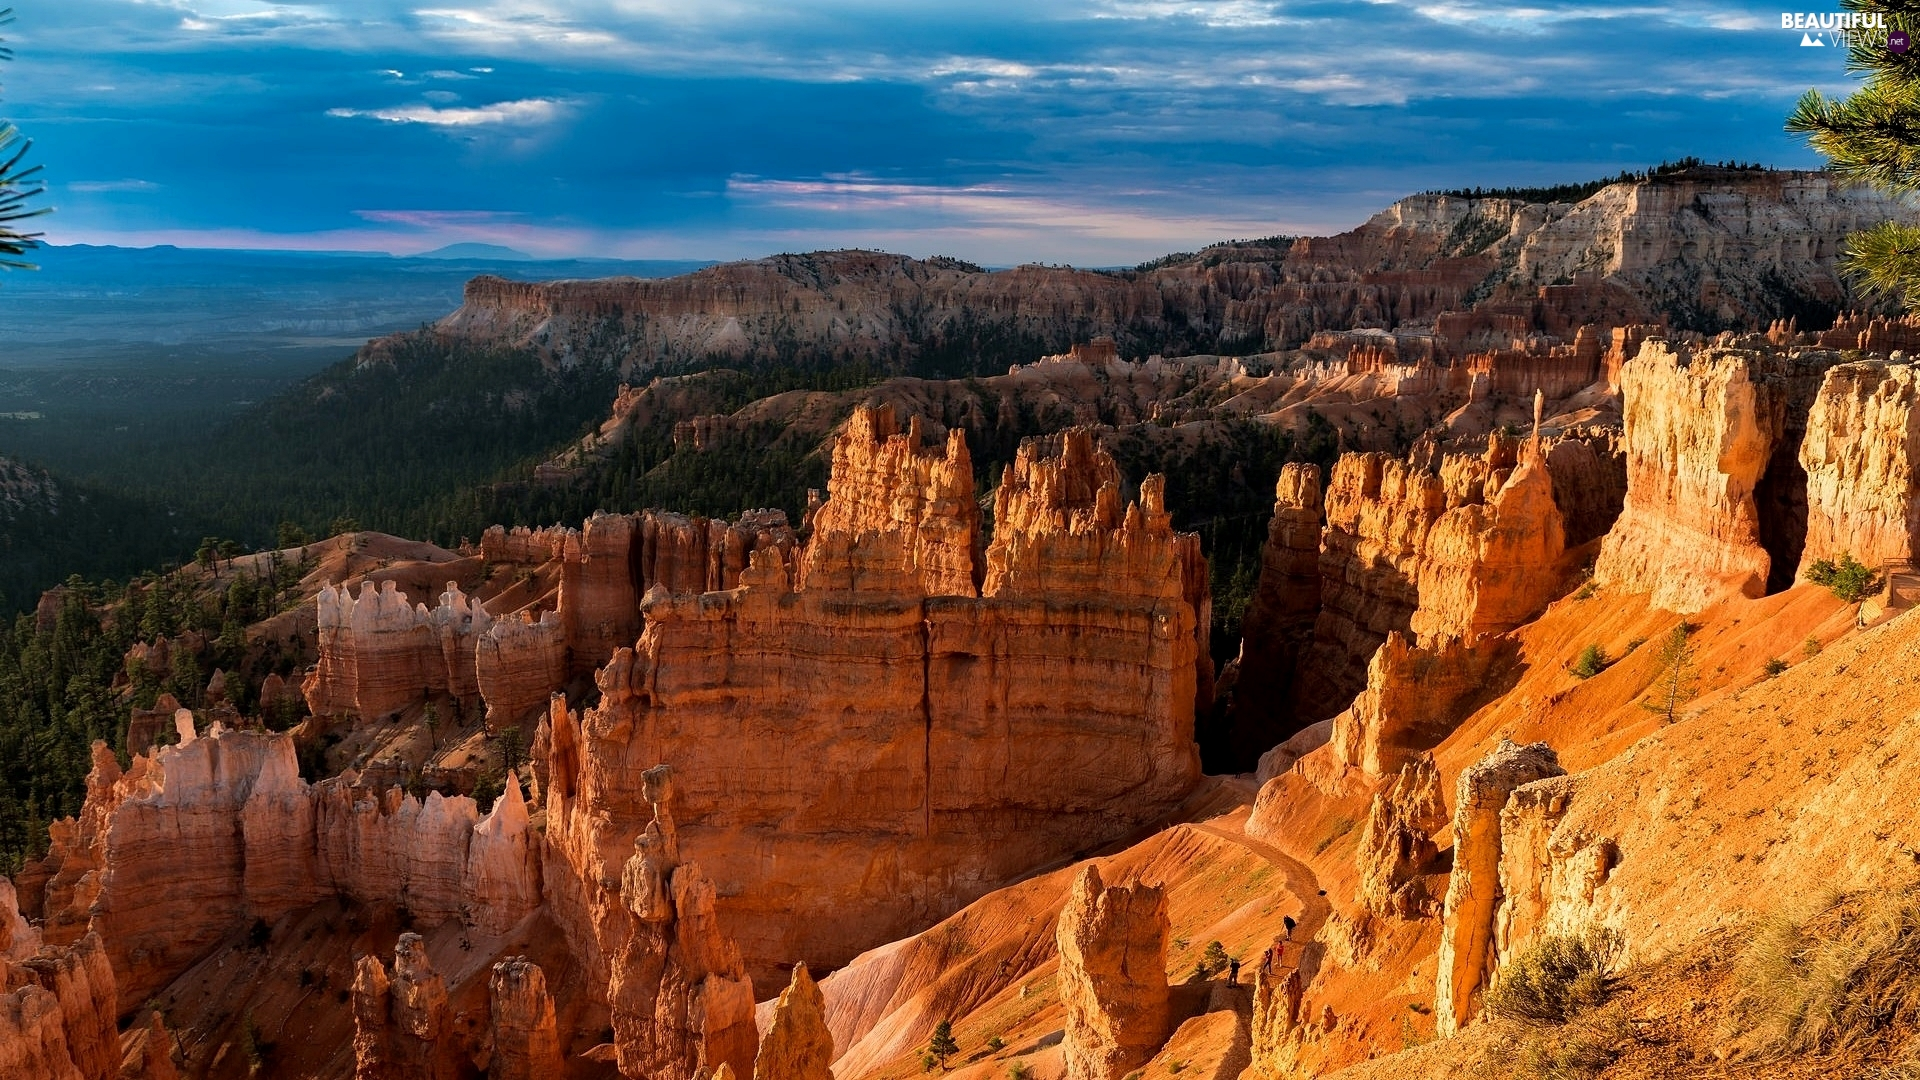 canyon, rocks, Utah State, The United States, Bryce Canyon National Park